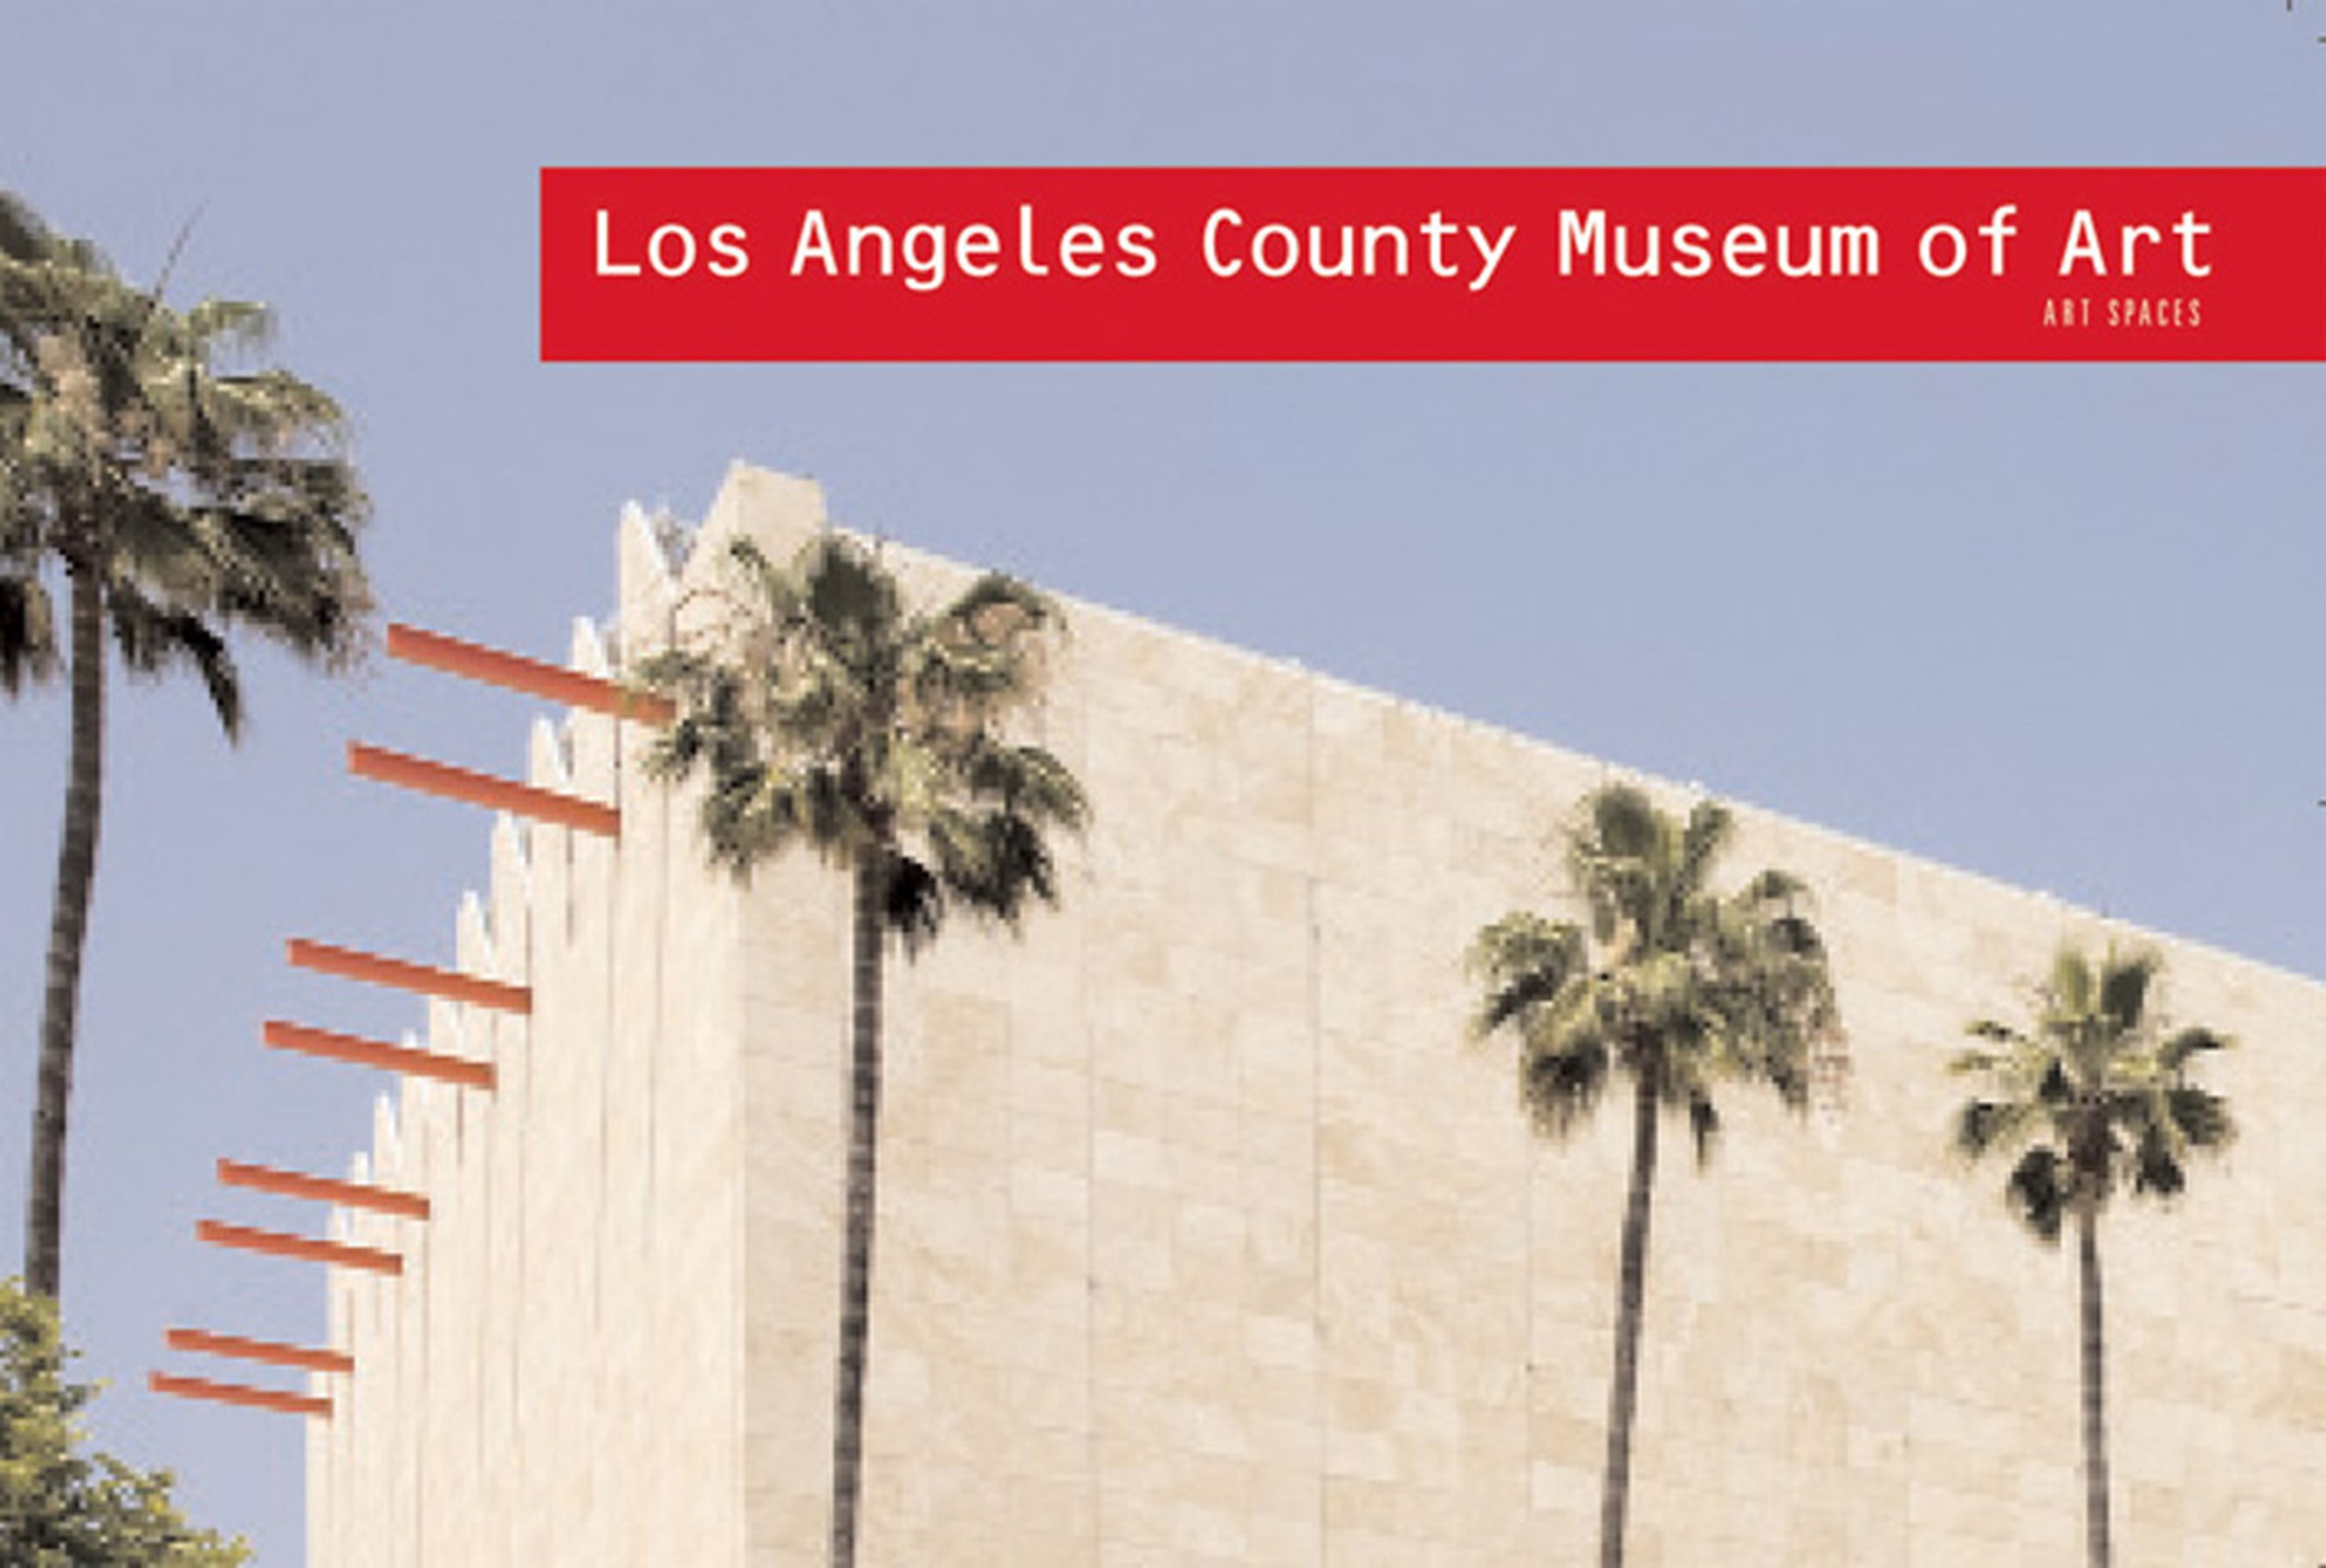 Los Angeles County Museum of Art: Art Spaces PDF